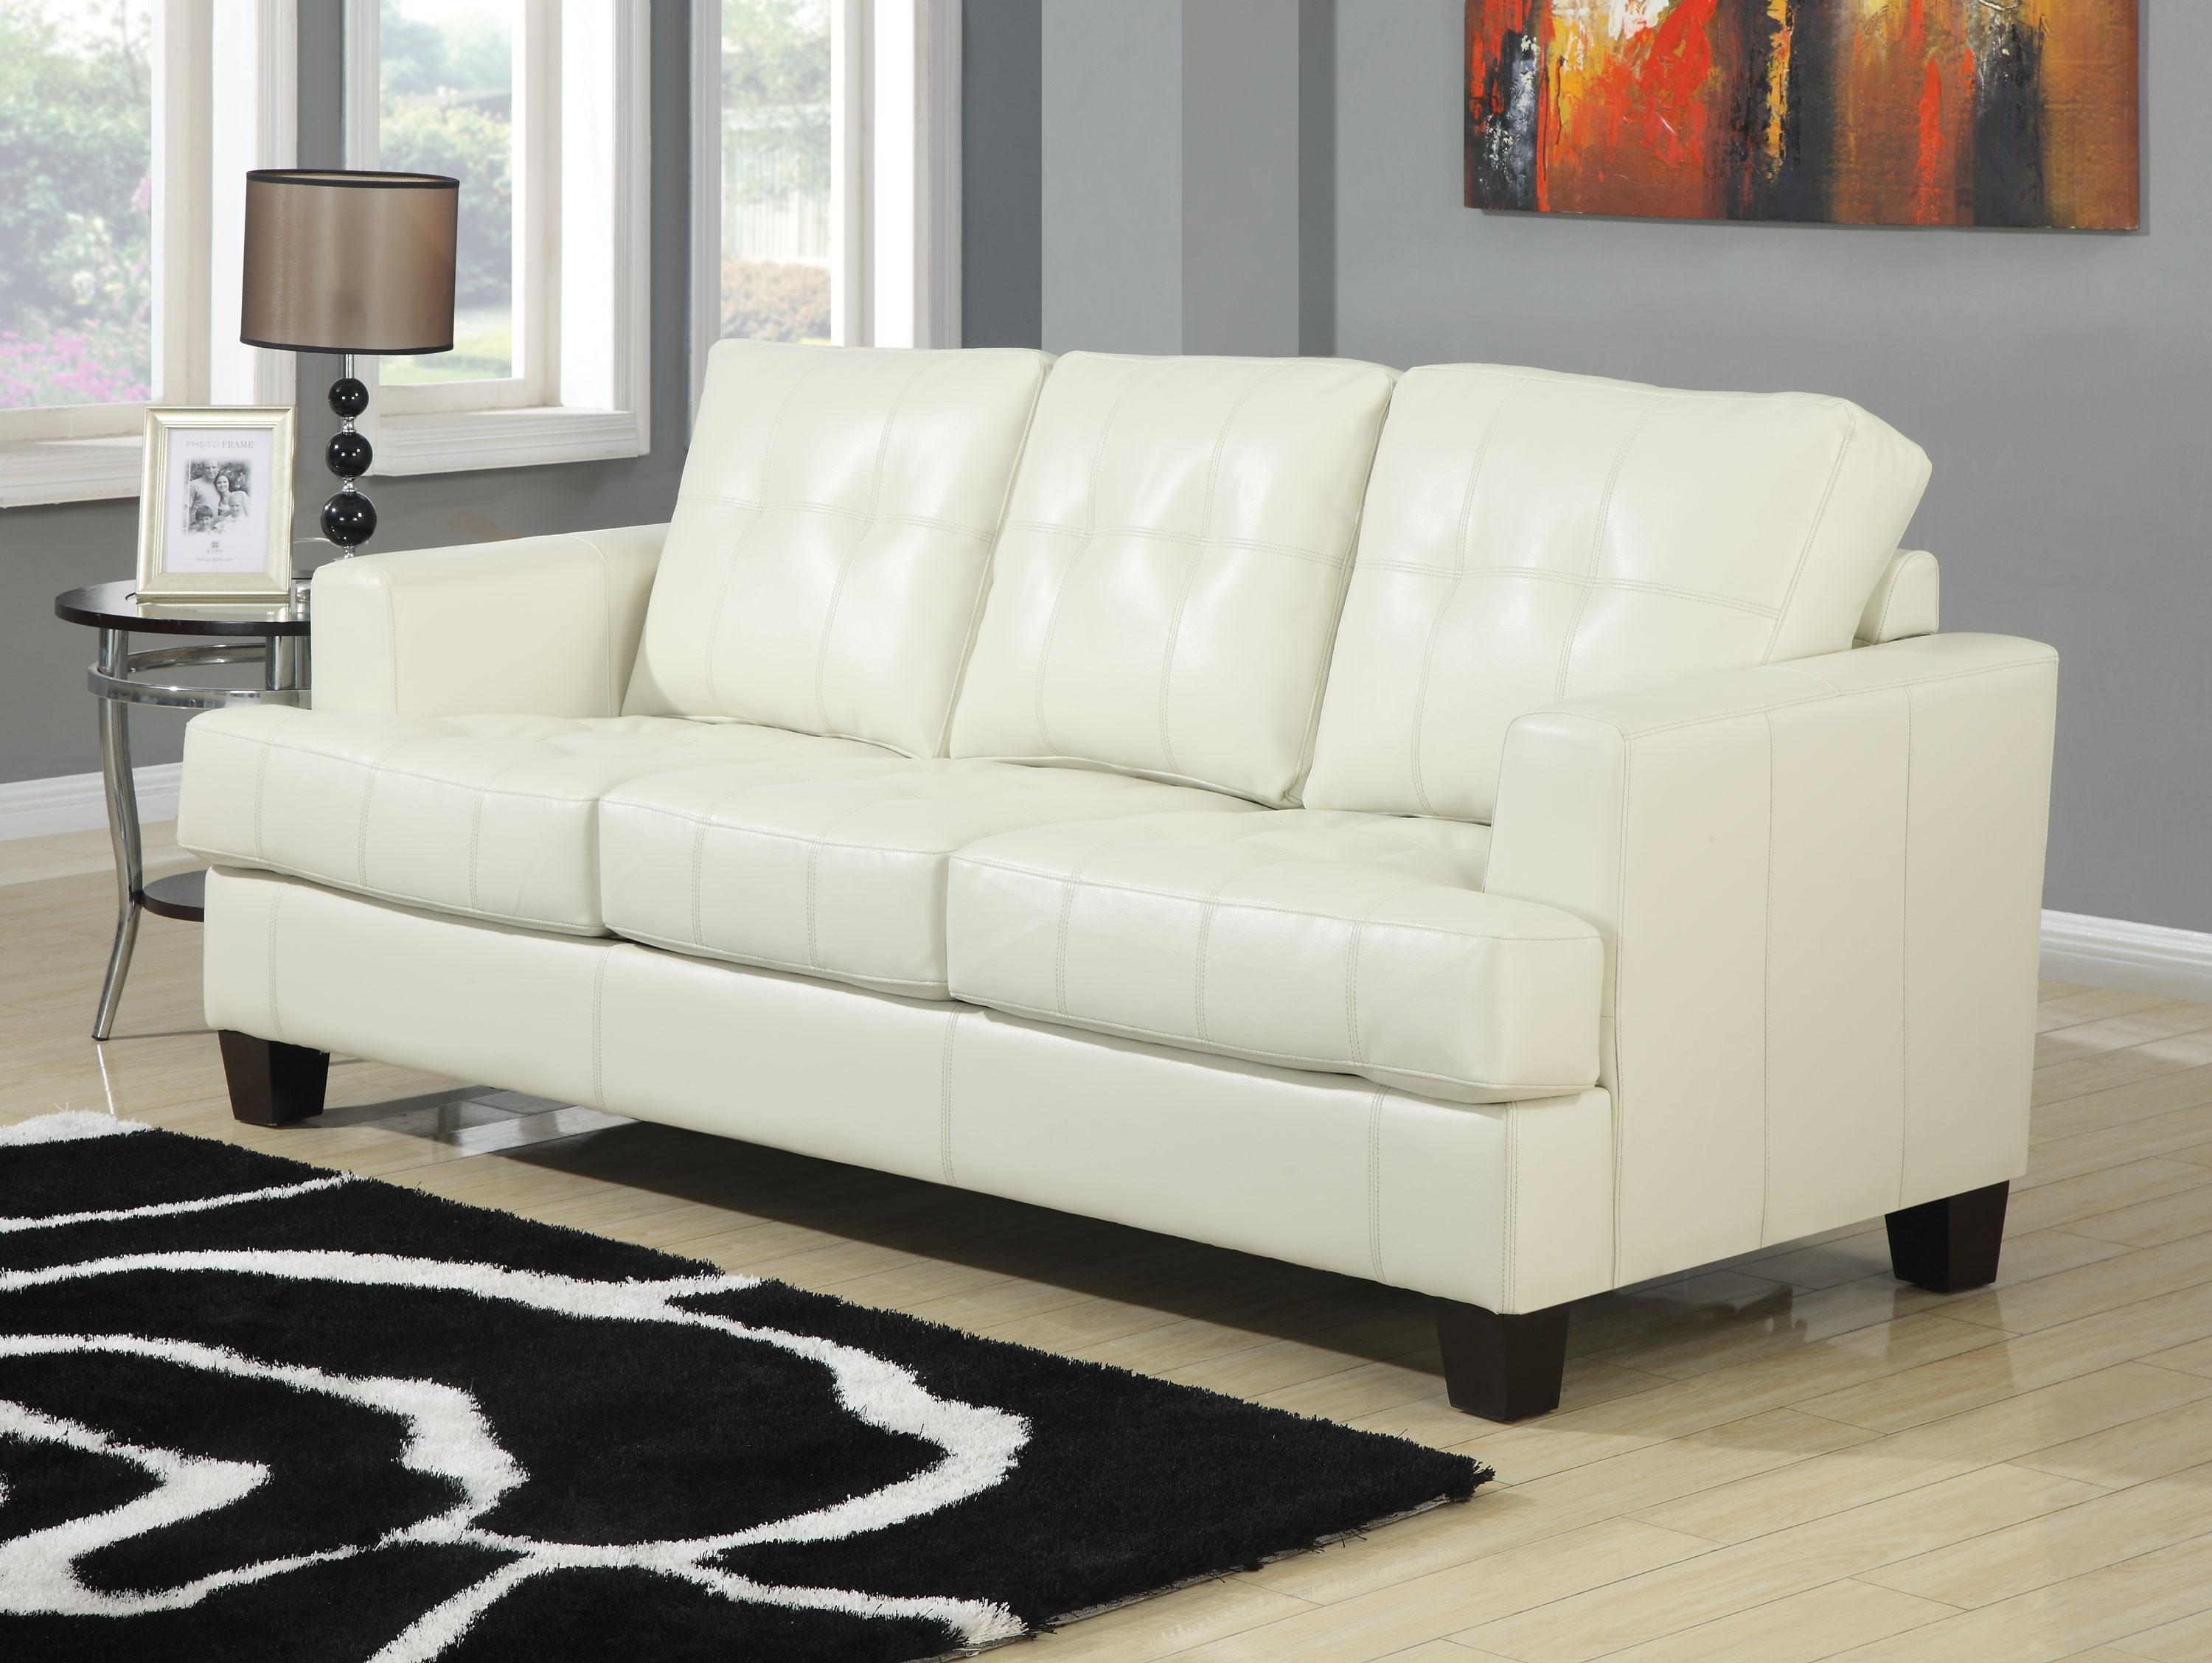 Cream Color Leather Sofa Set Gallery Image Iransafebox The Company Pertaining To Cream Colored Sofa (View 20 of 20)